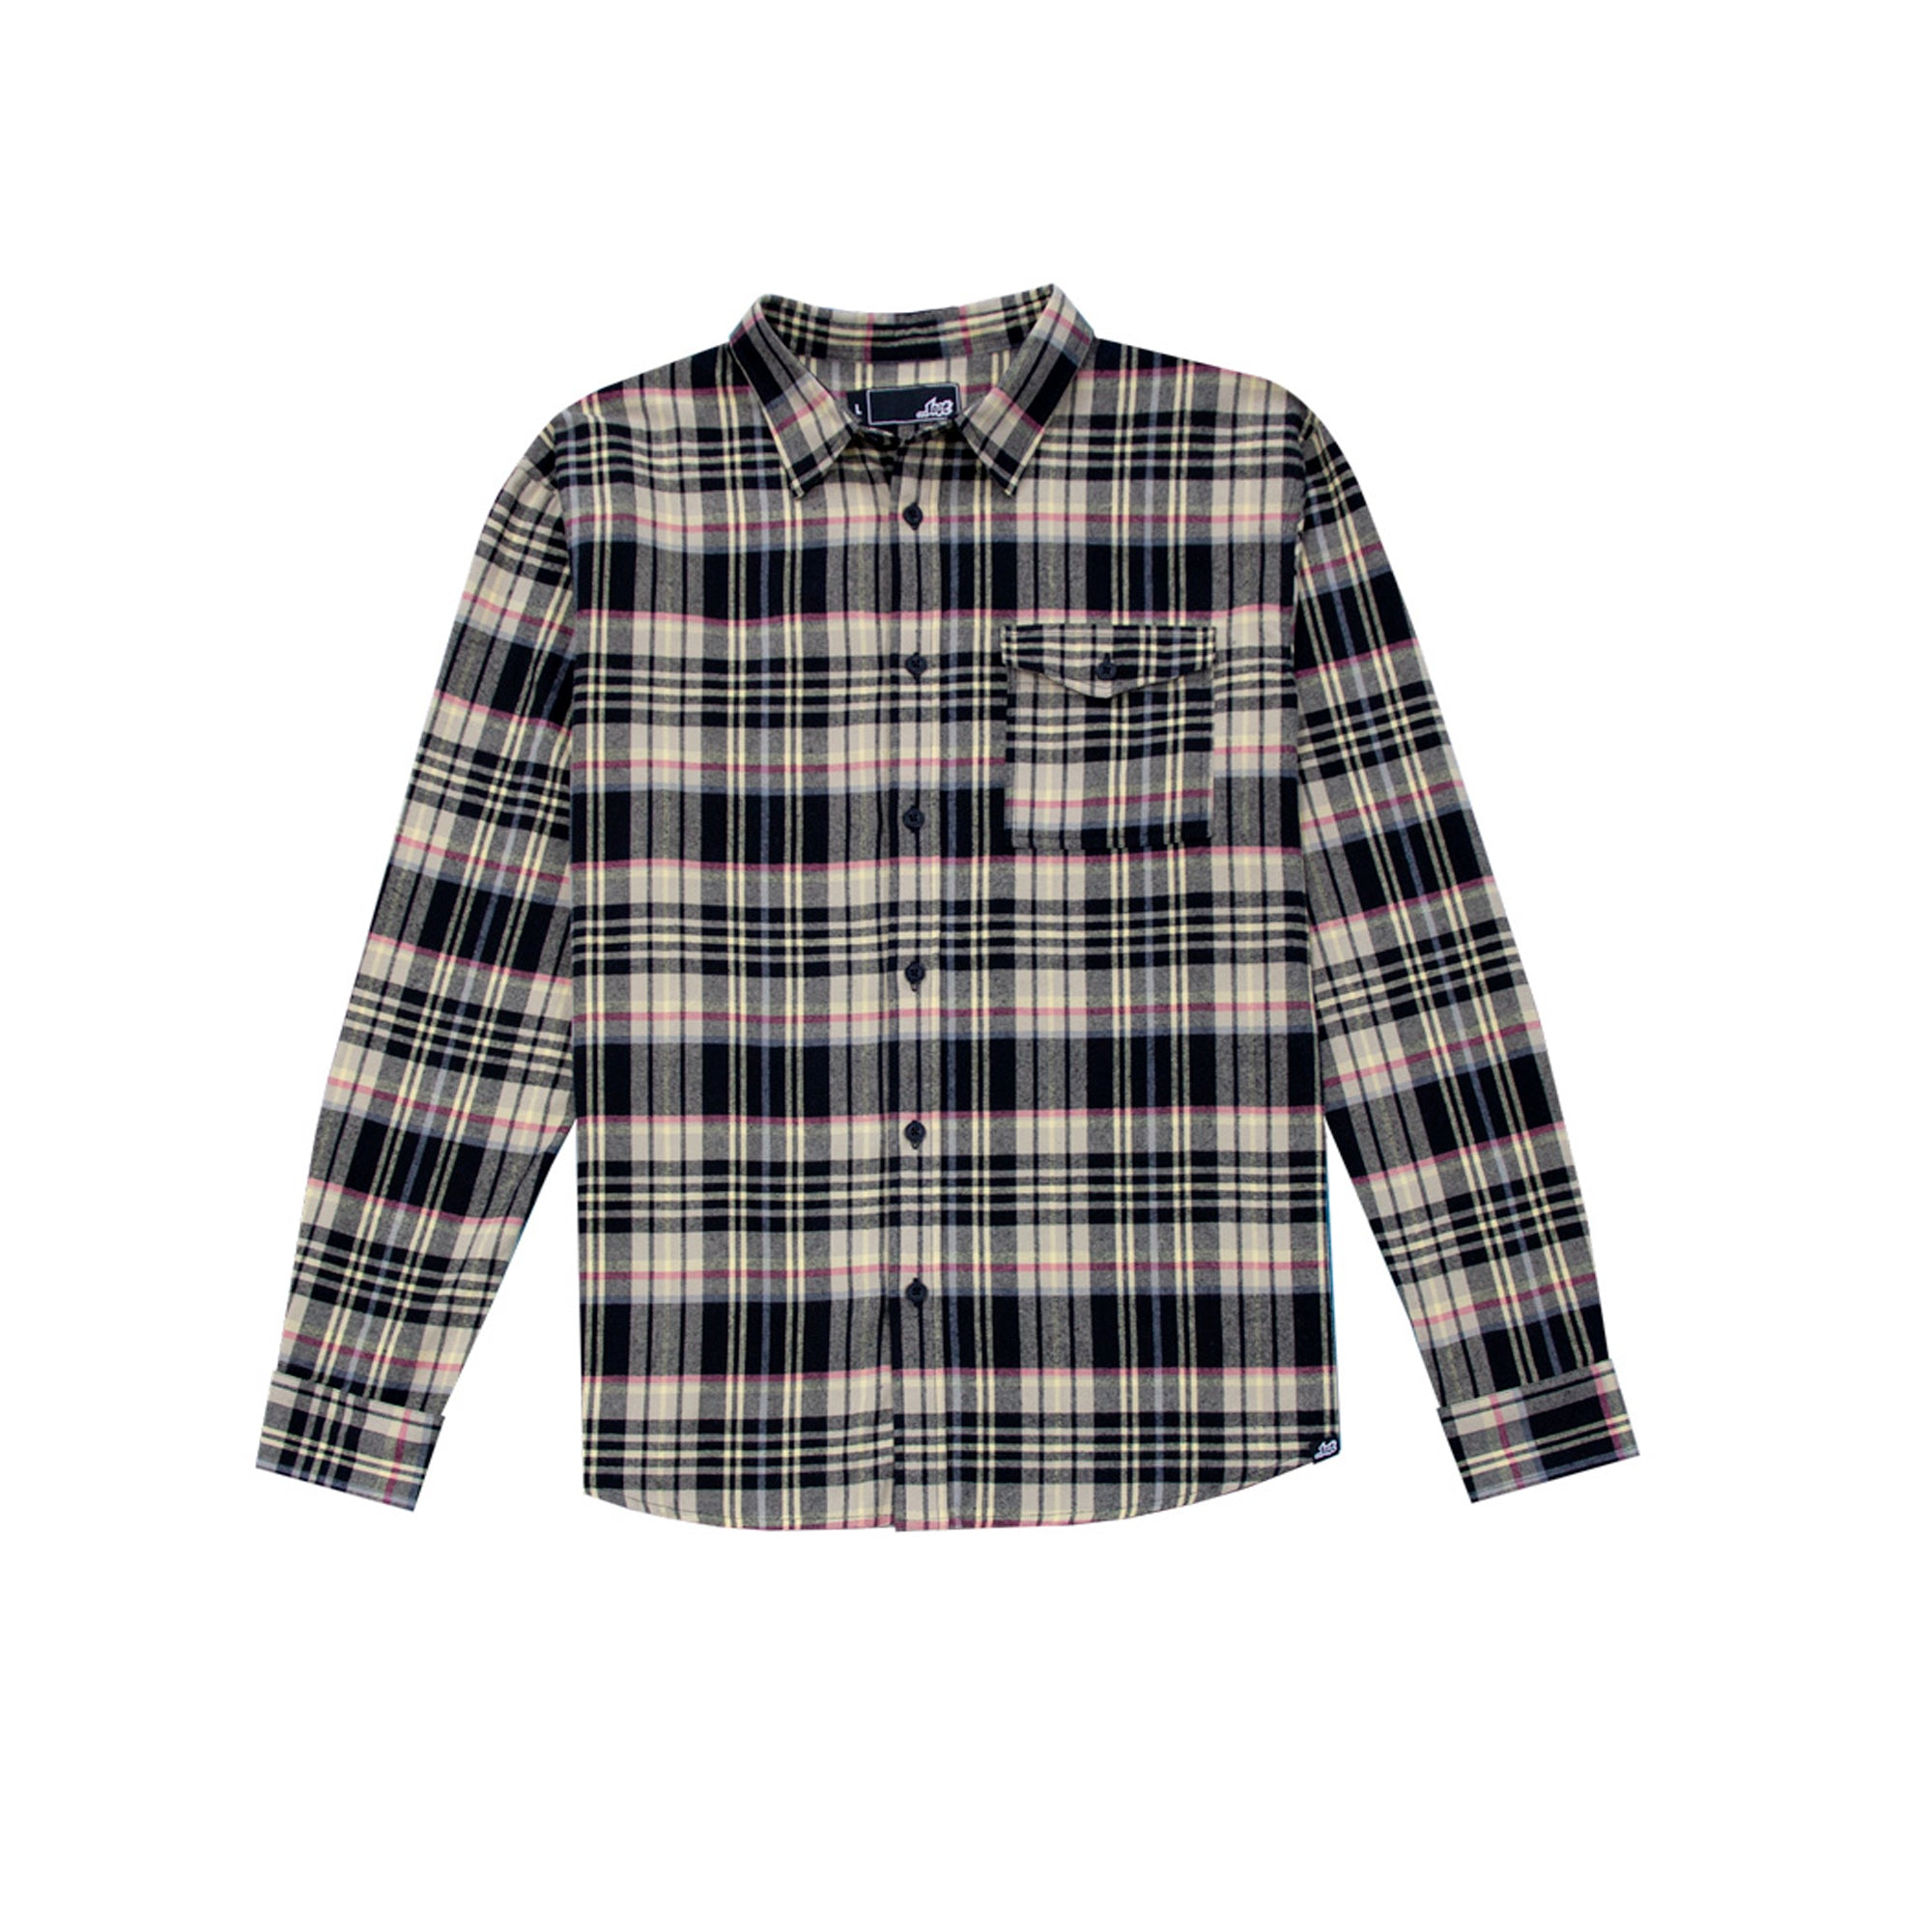 Lost Frenzy Men's Flannel Shirt